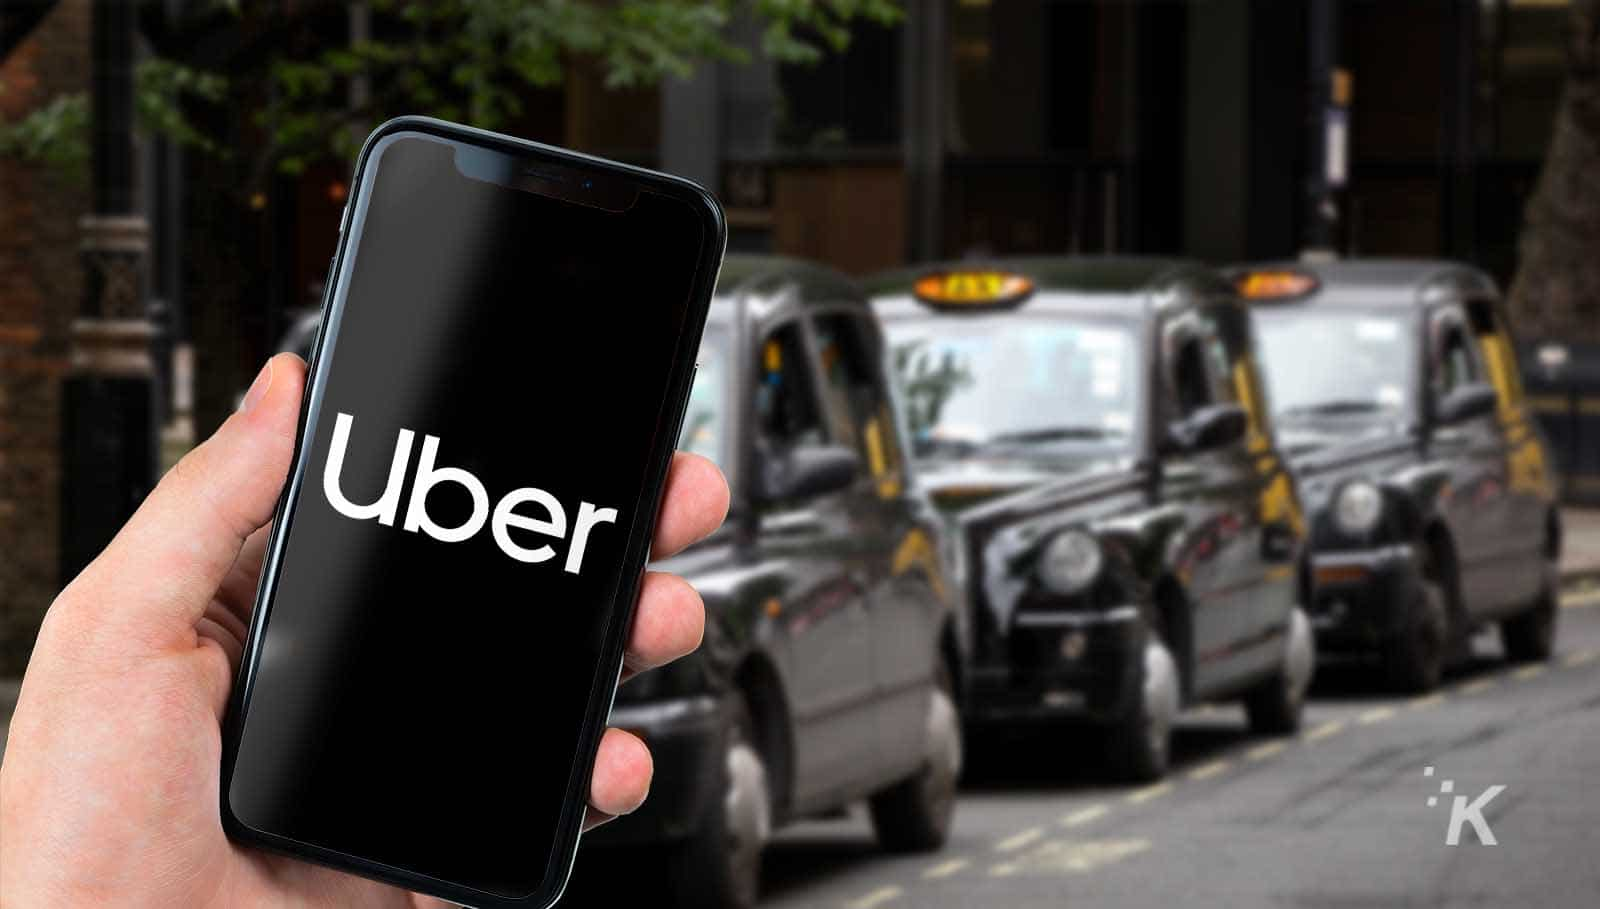 uber in london with taxis in the background